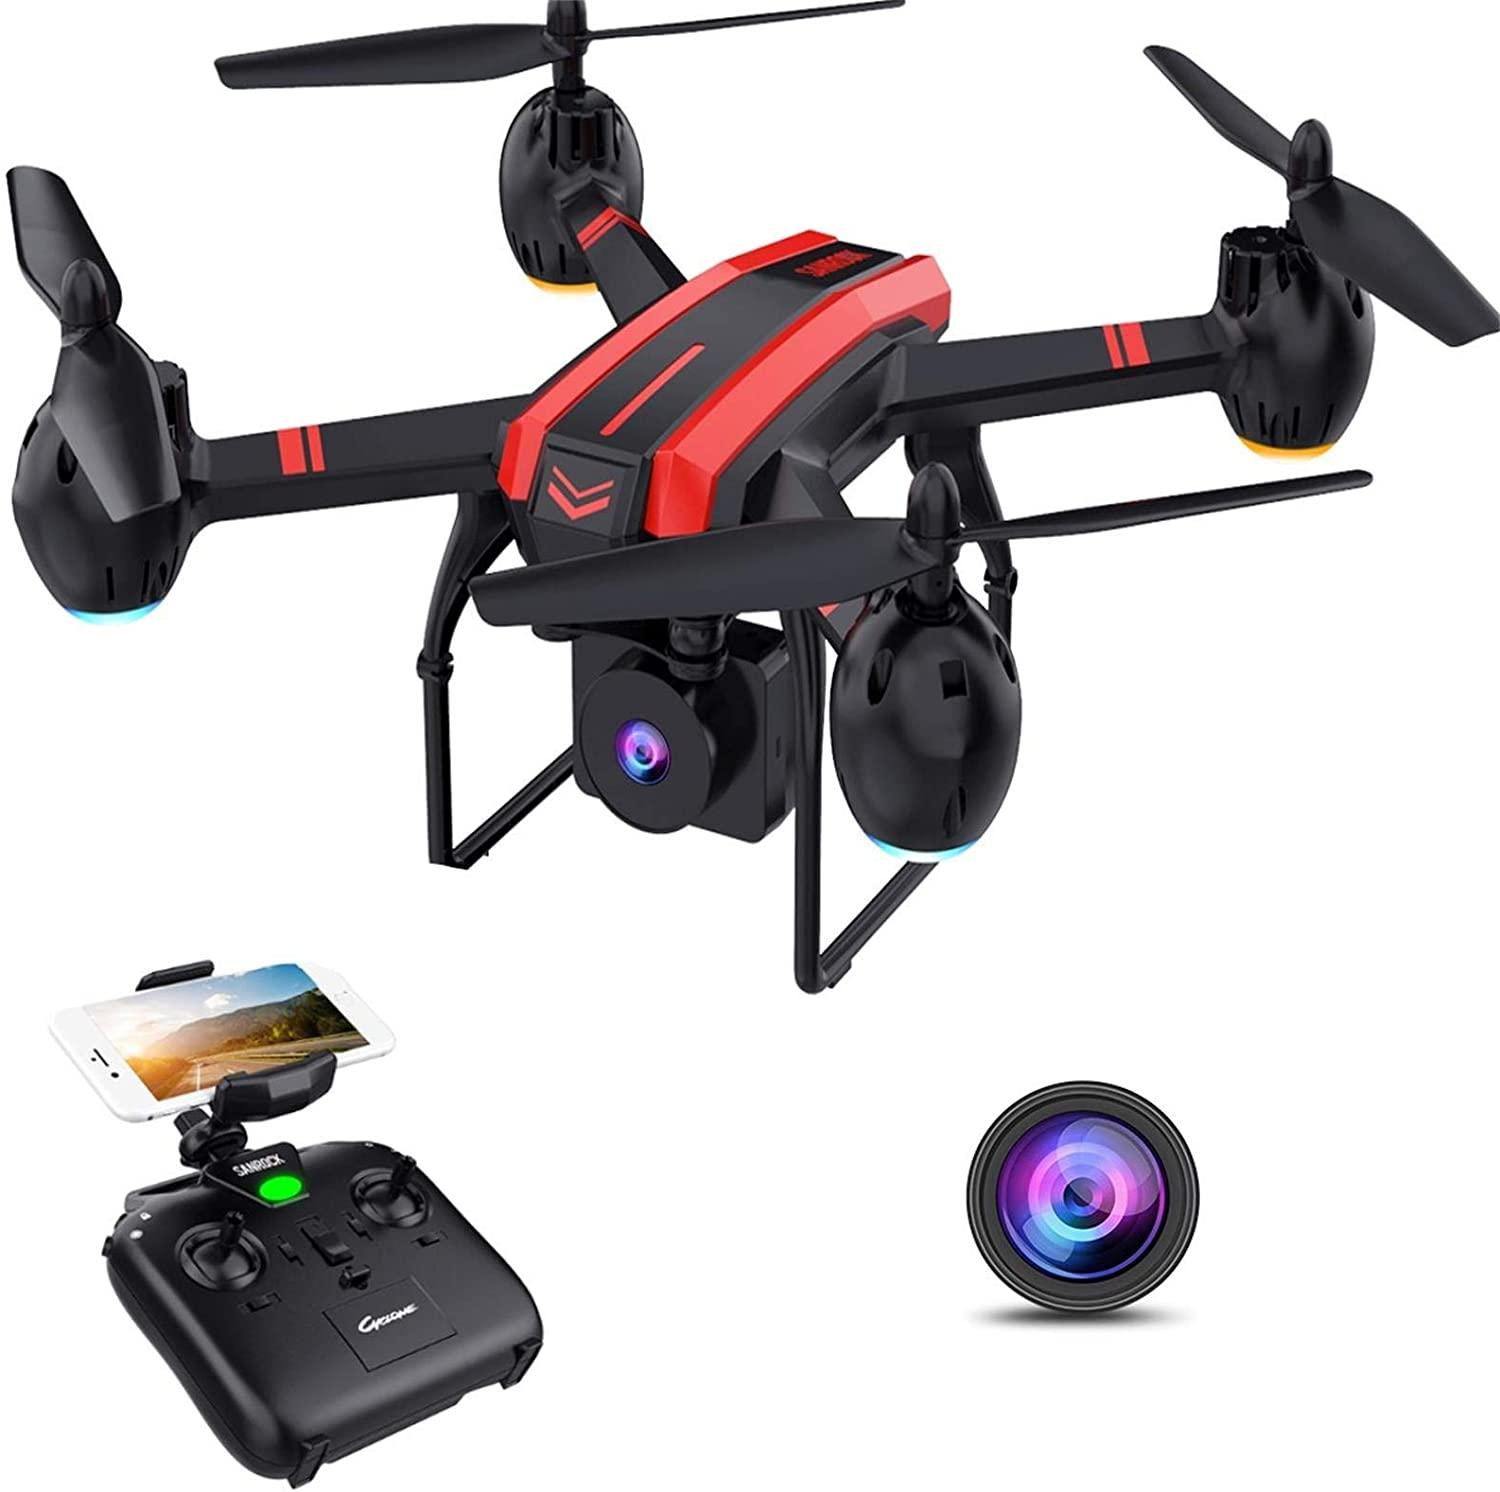 SANROCK Drones with Camera for Adults and Kids, 1080P Full HD FPV Live Video, X105W RC Quadcopter App Control, Altitude Hold, Headless Mode, Trajectory Flight, Gravity Sensor, 3D Flip - Rite